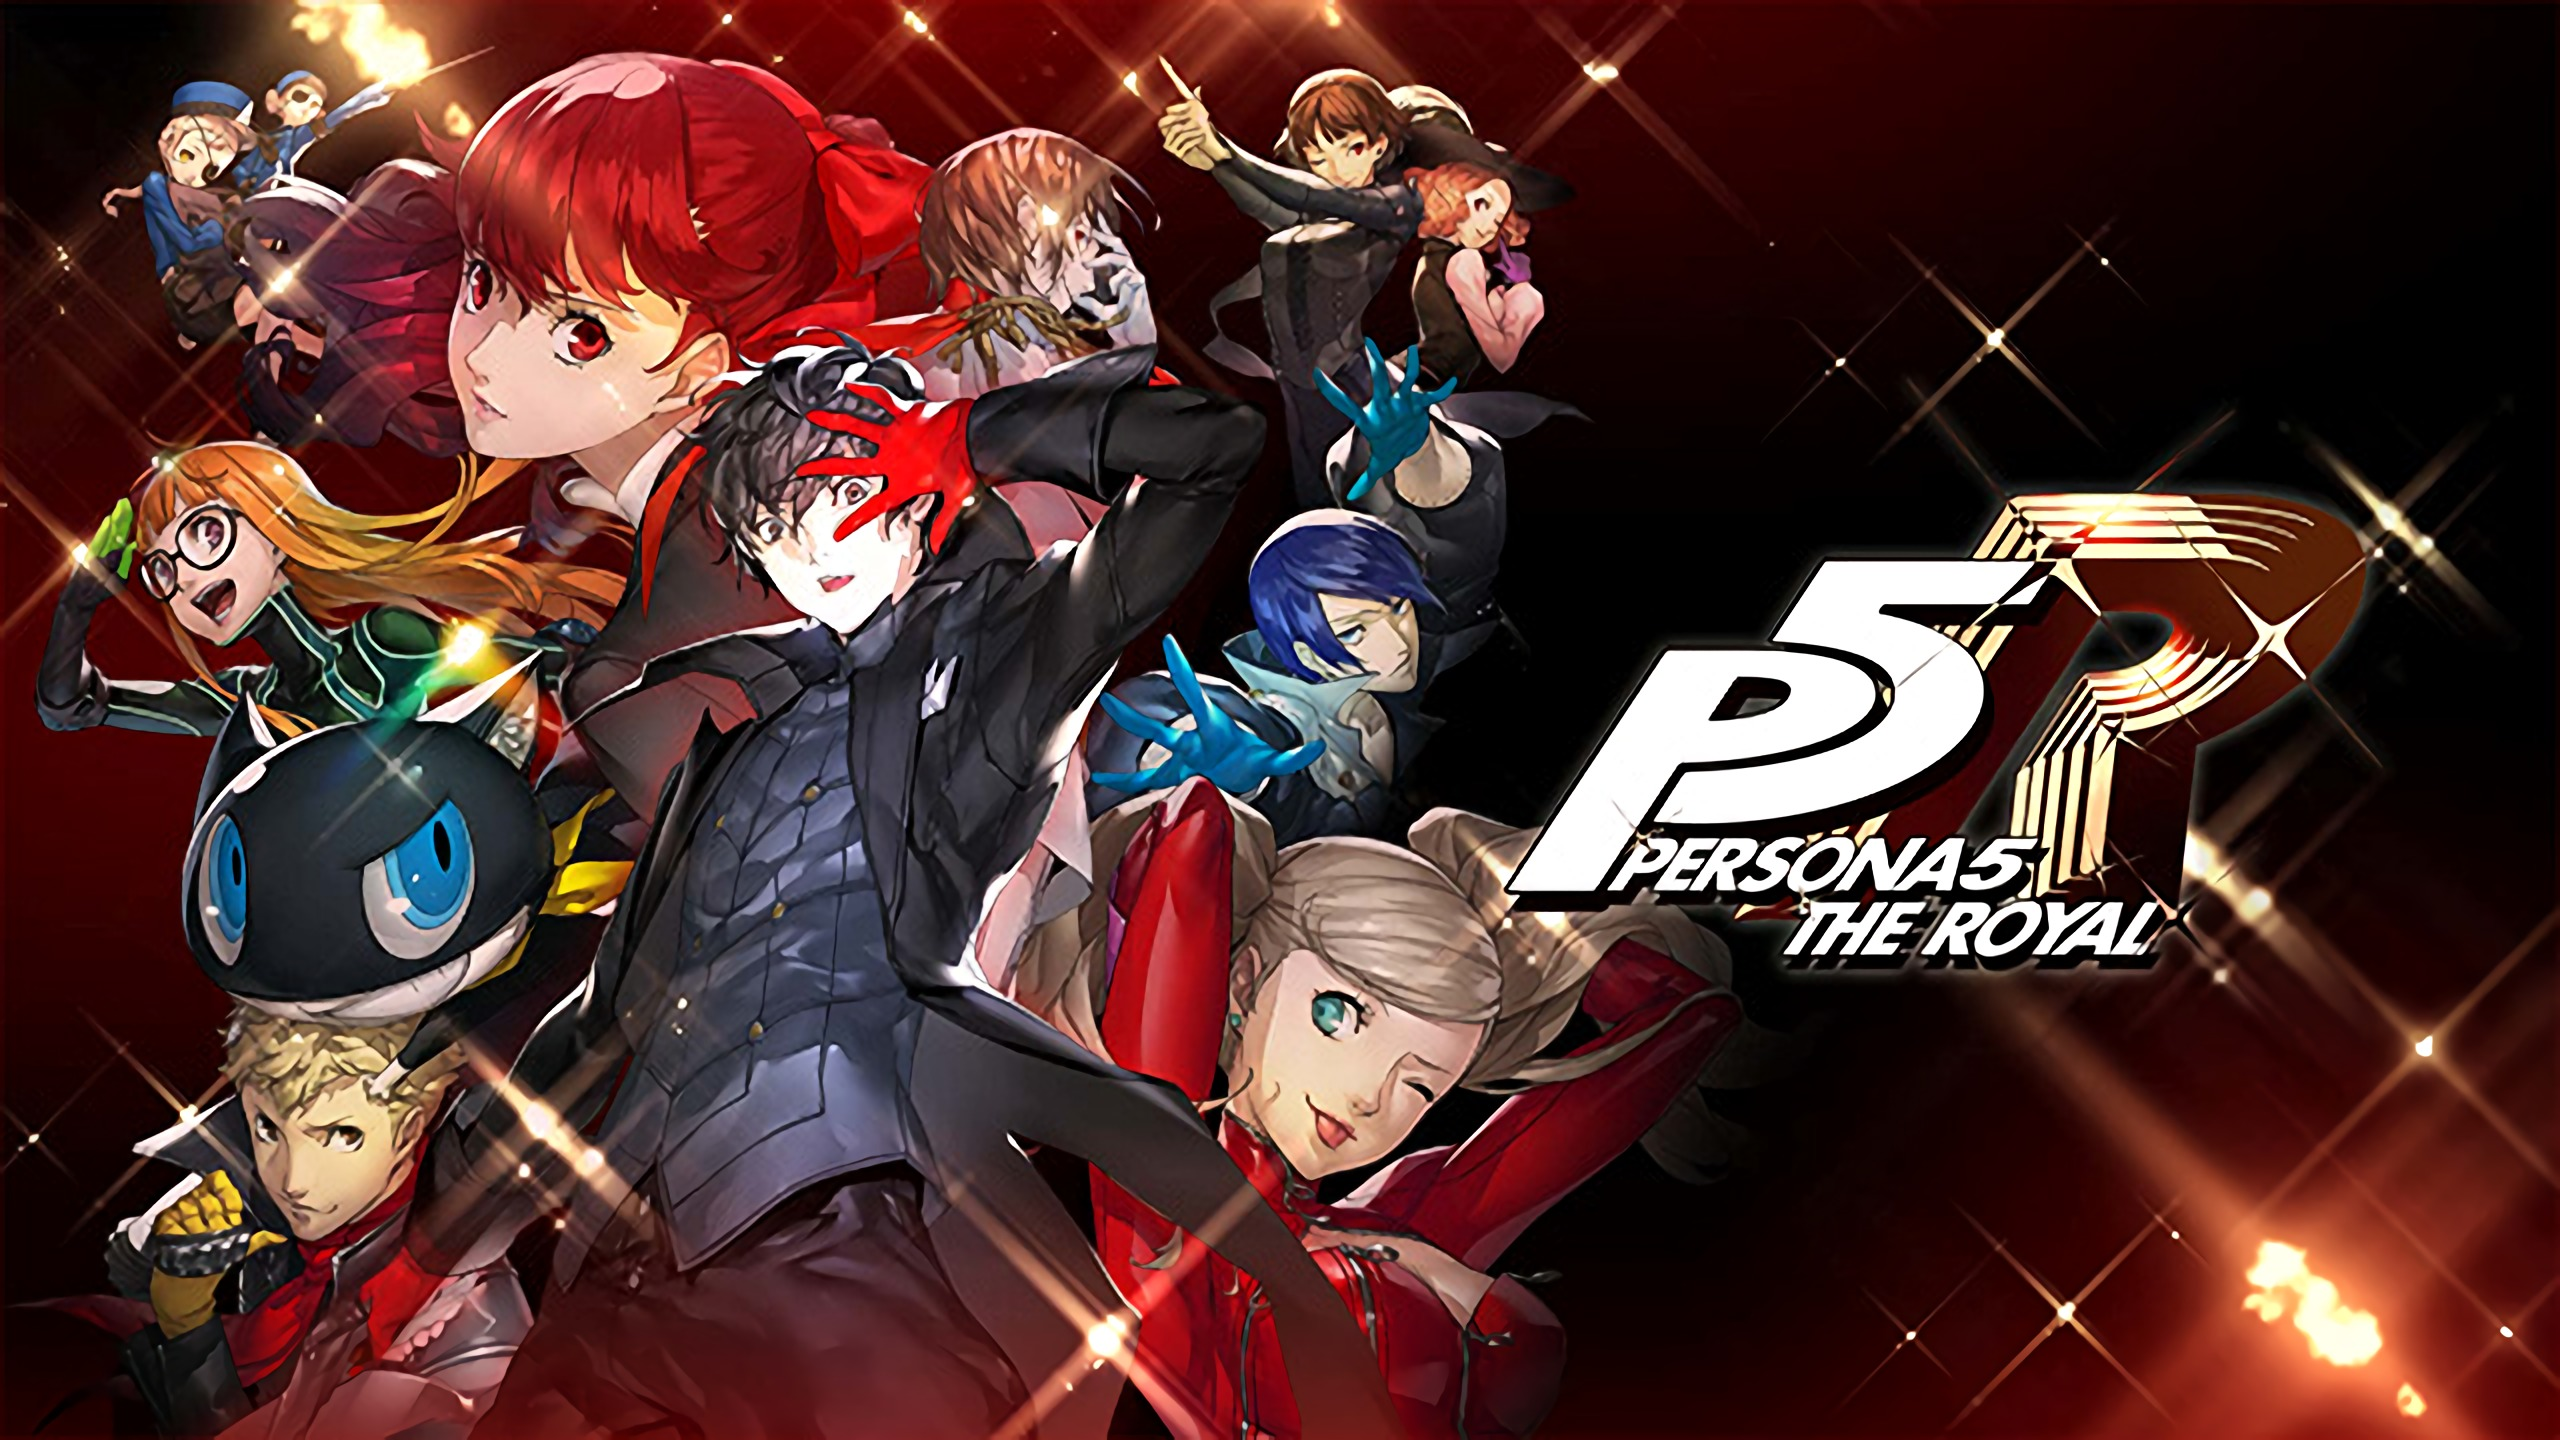 Persona 5 Royal Review - A Love Letter from Atlus